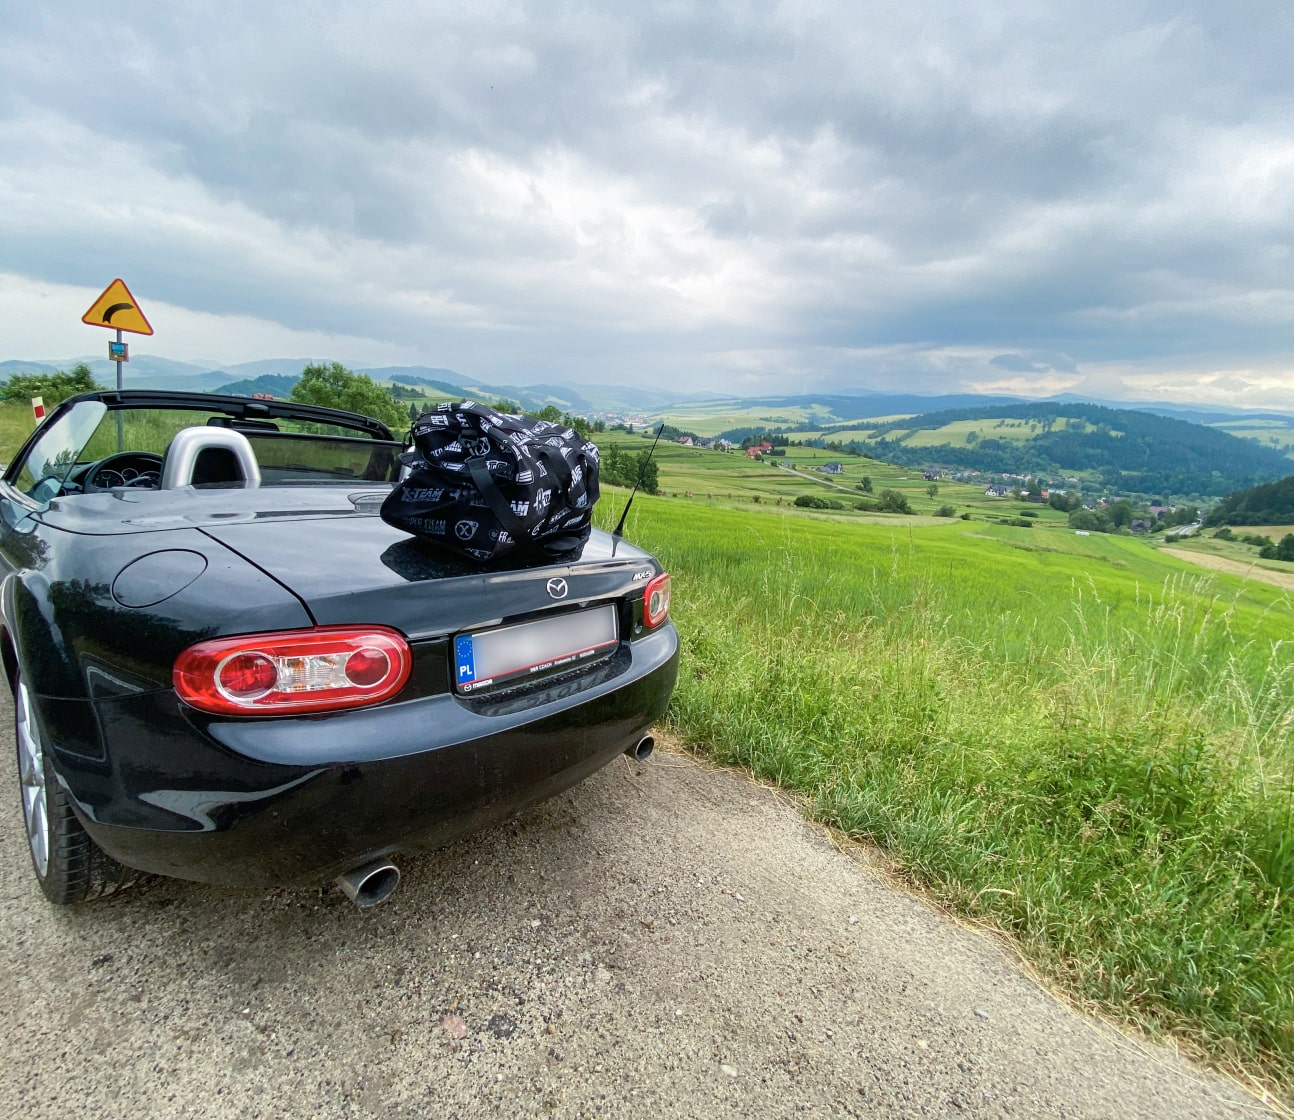 A photo of a landscape in Poland with X-Team bag and my car.